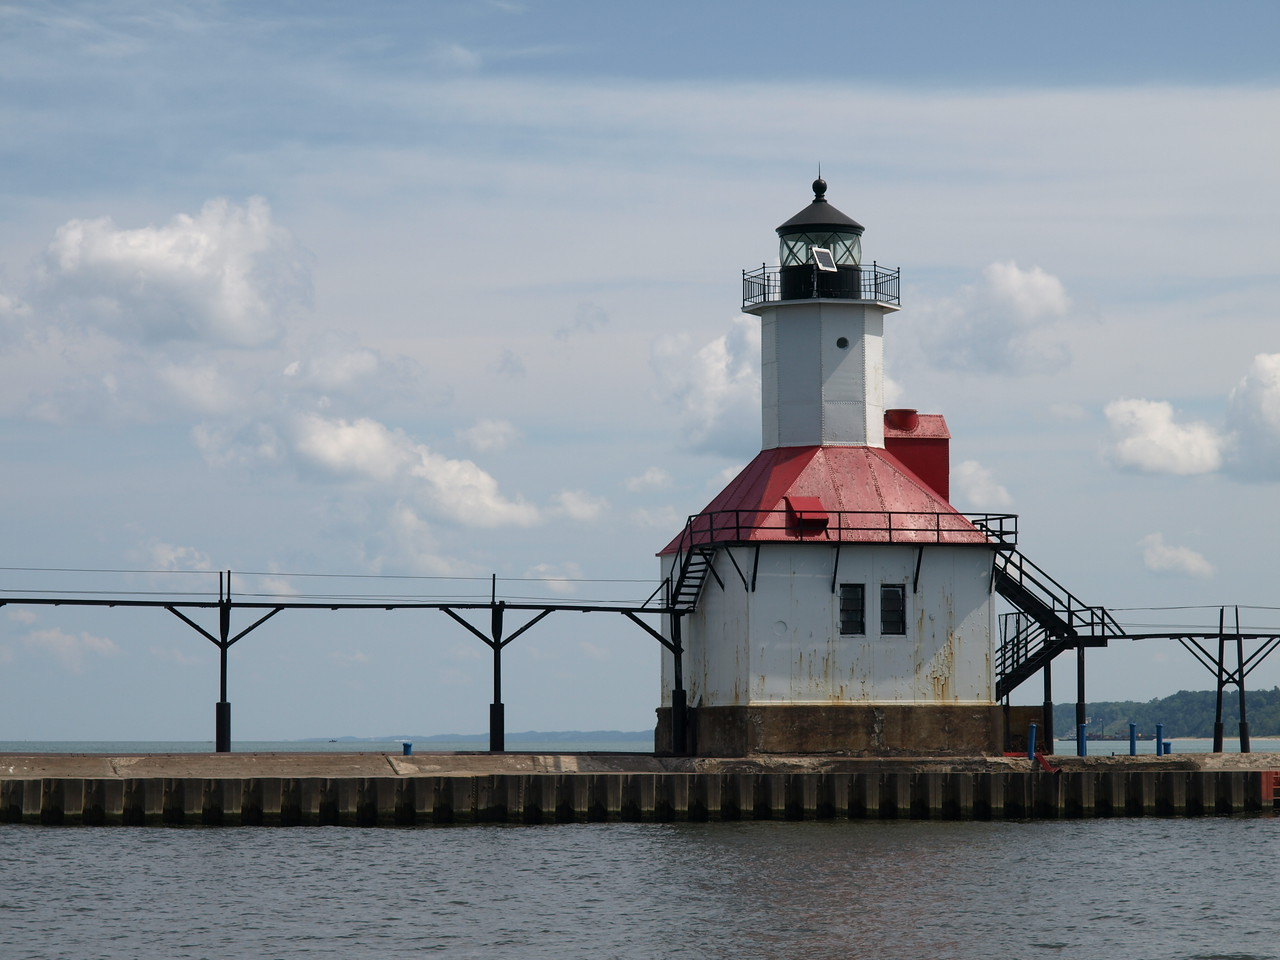 North Pierhead Lighthouse, St. Joseph, Michigan